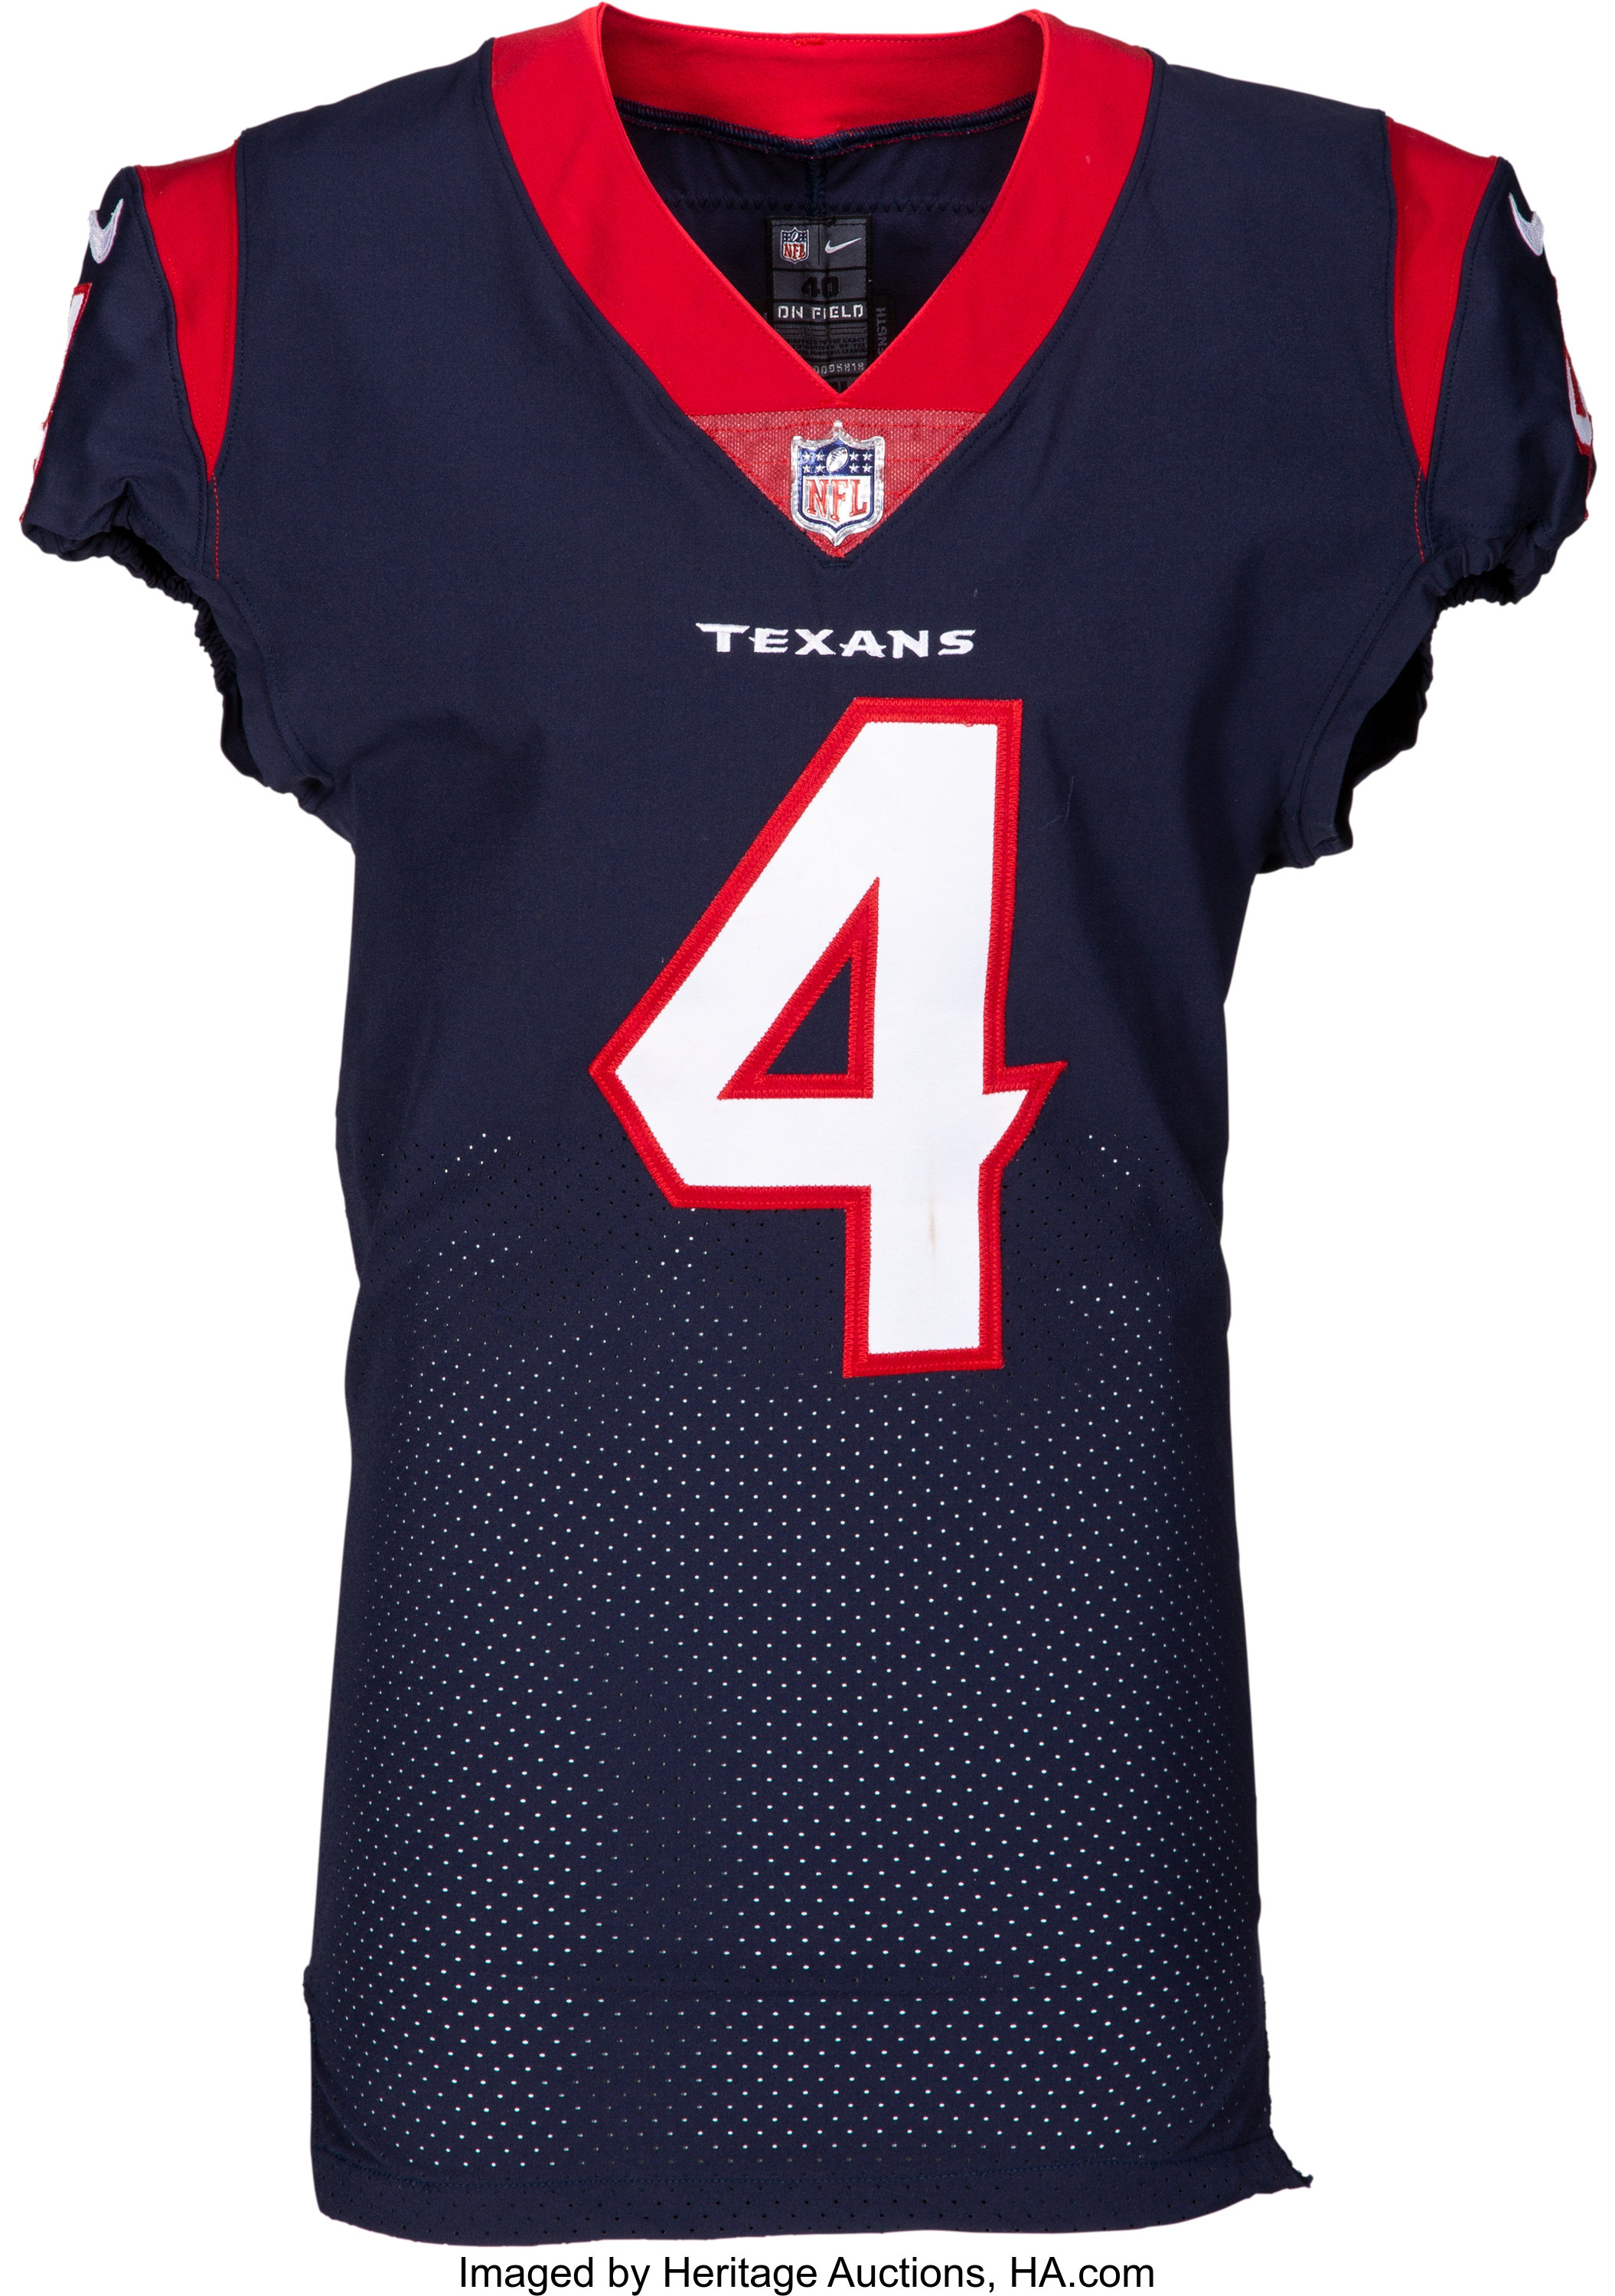 8144ed453c7 2017 Deshaun Watson Game Worn & Signed Houston Texans Jersey | Lot #56818 |  Heritage Auctions